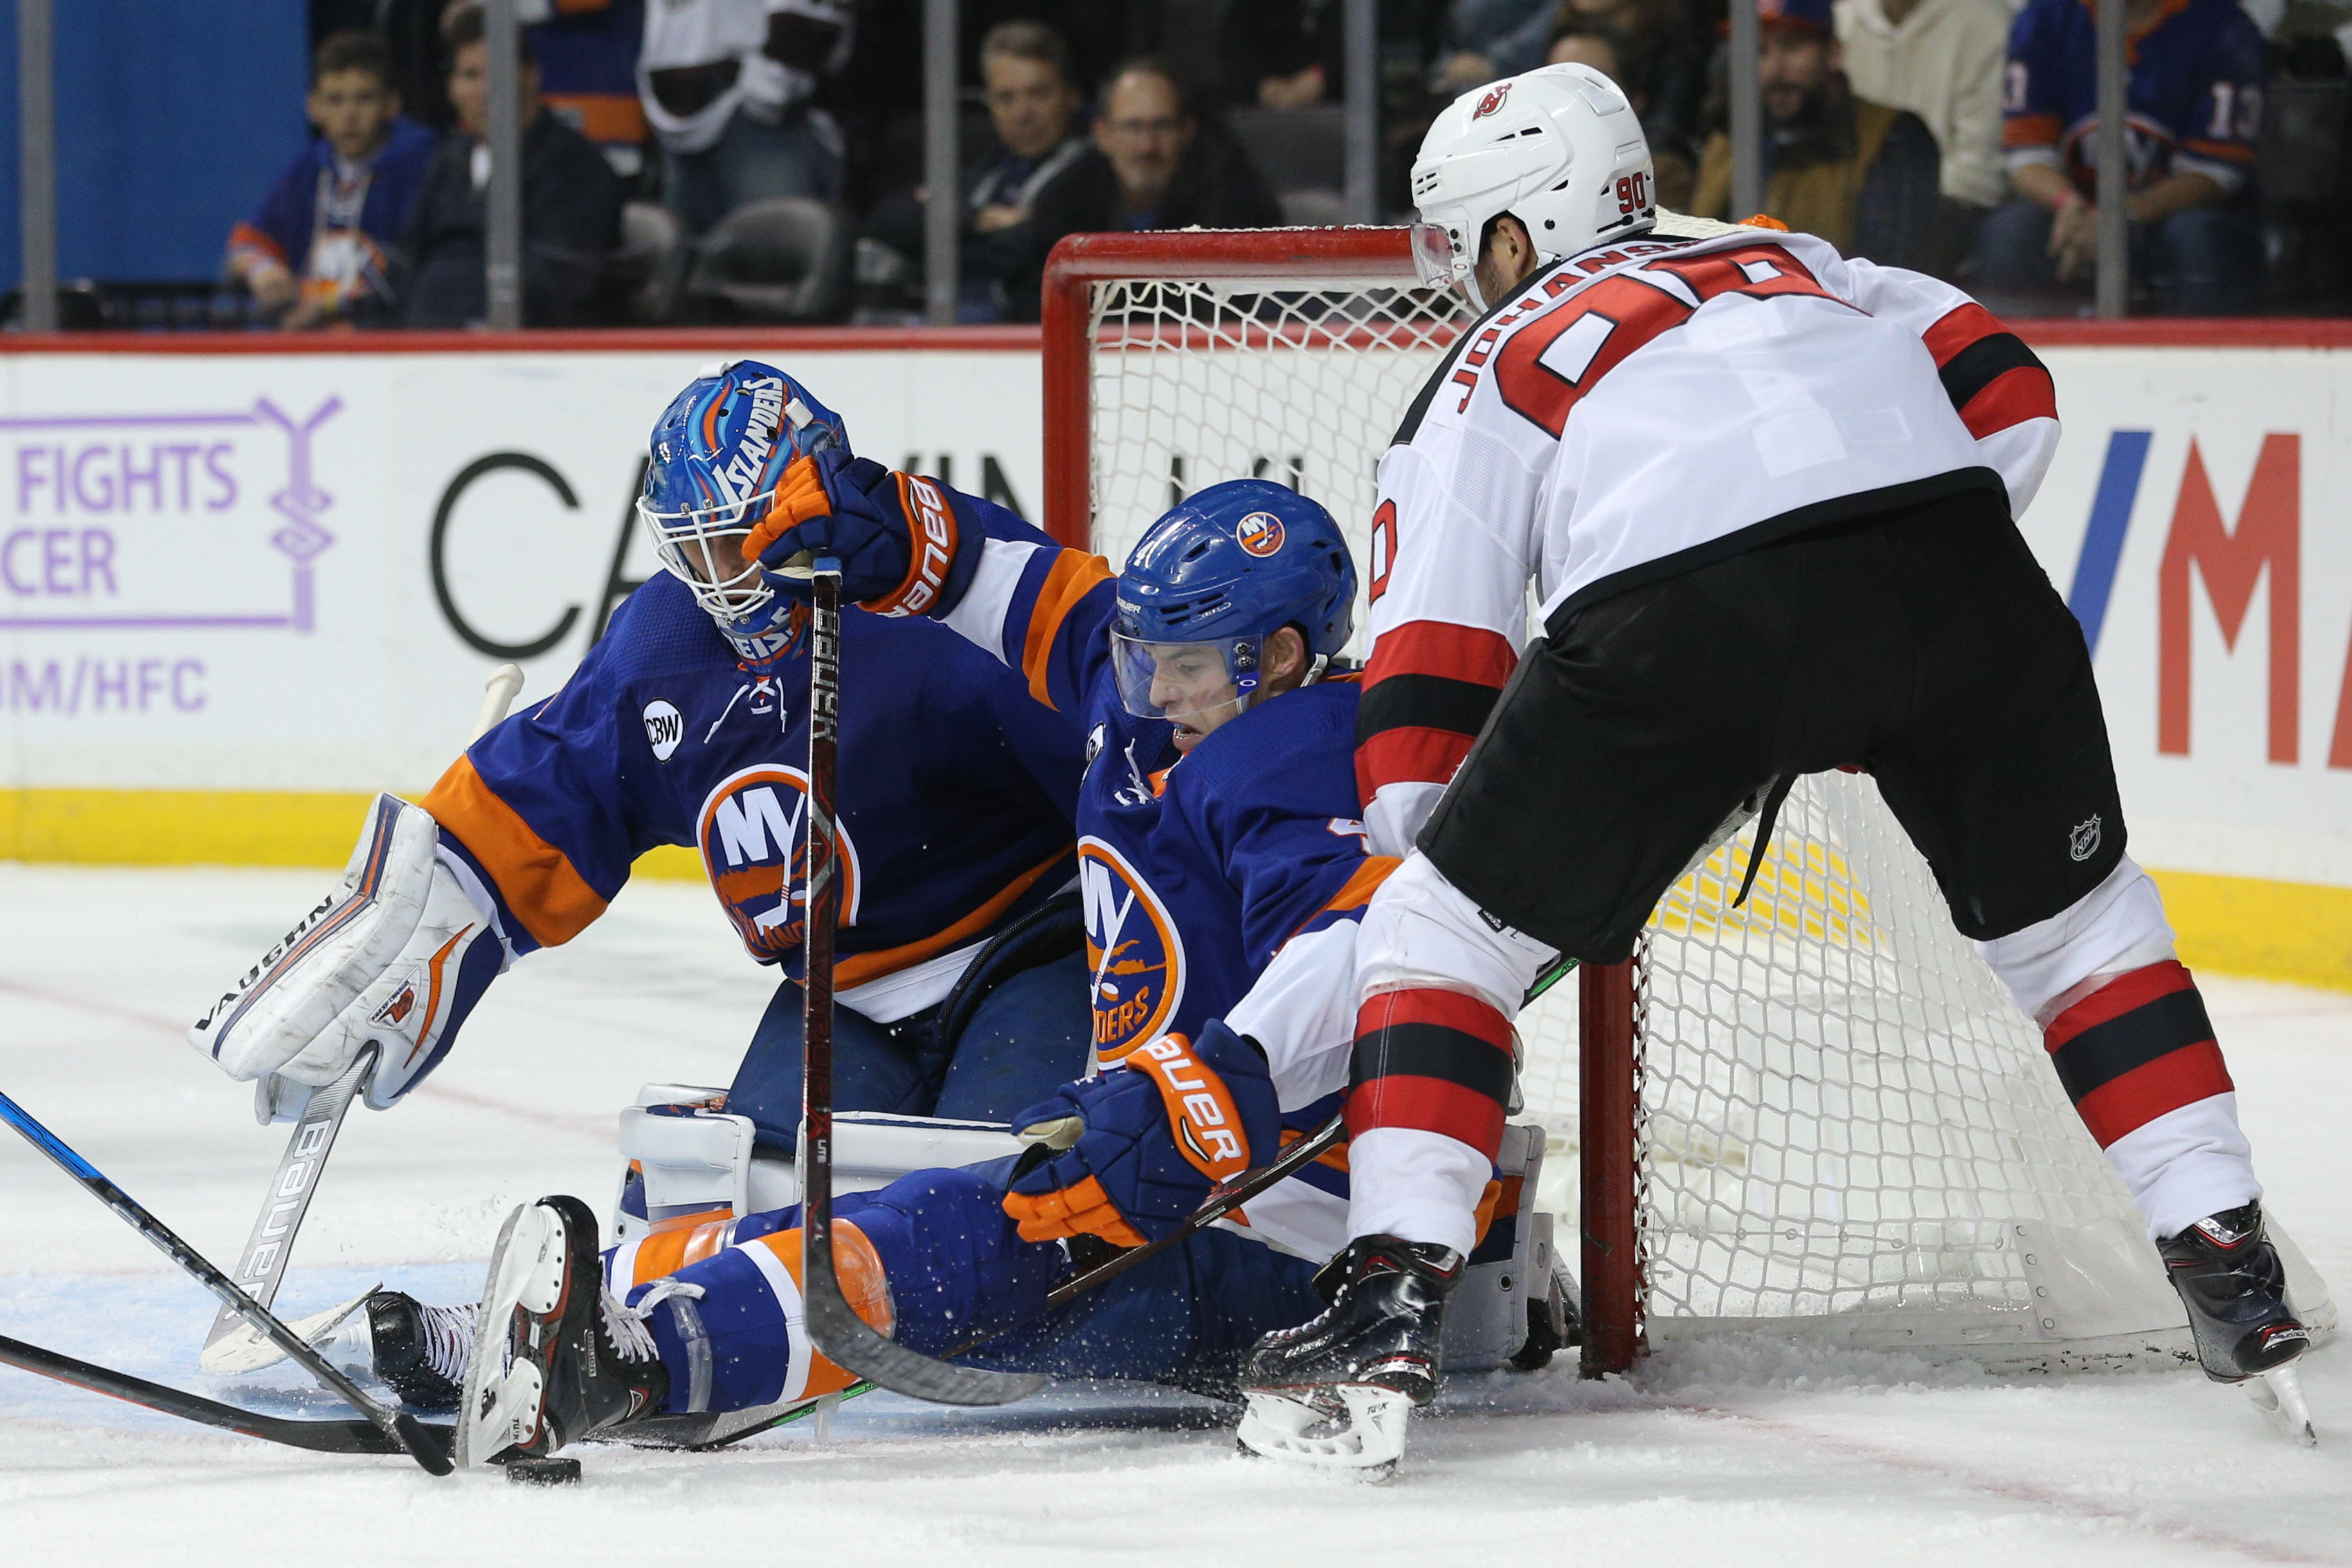 Nov 3, 2018; Brooklyn, NY, USA; New York Islanders goaltender Thomas Greiss (1) makes a save against New Jersey Devils left wing Marcus Johansson (90) in front of Islanders defenseman Thomas Hickey (4) during the third period at Barclays Center. Mandatory Credit: Brad Penner-USA TODAY Sports